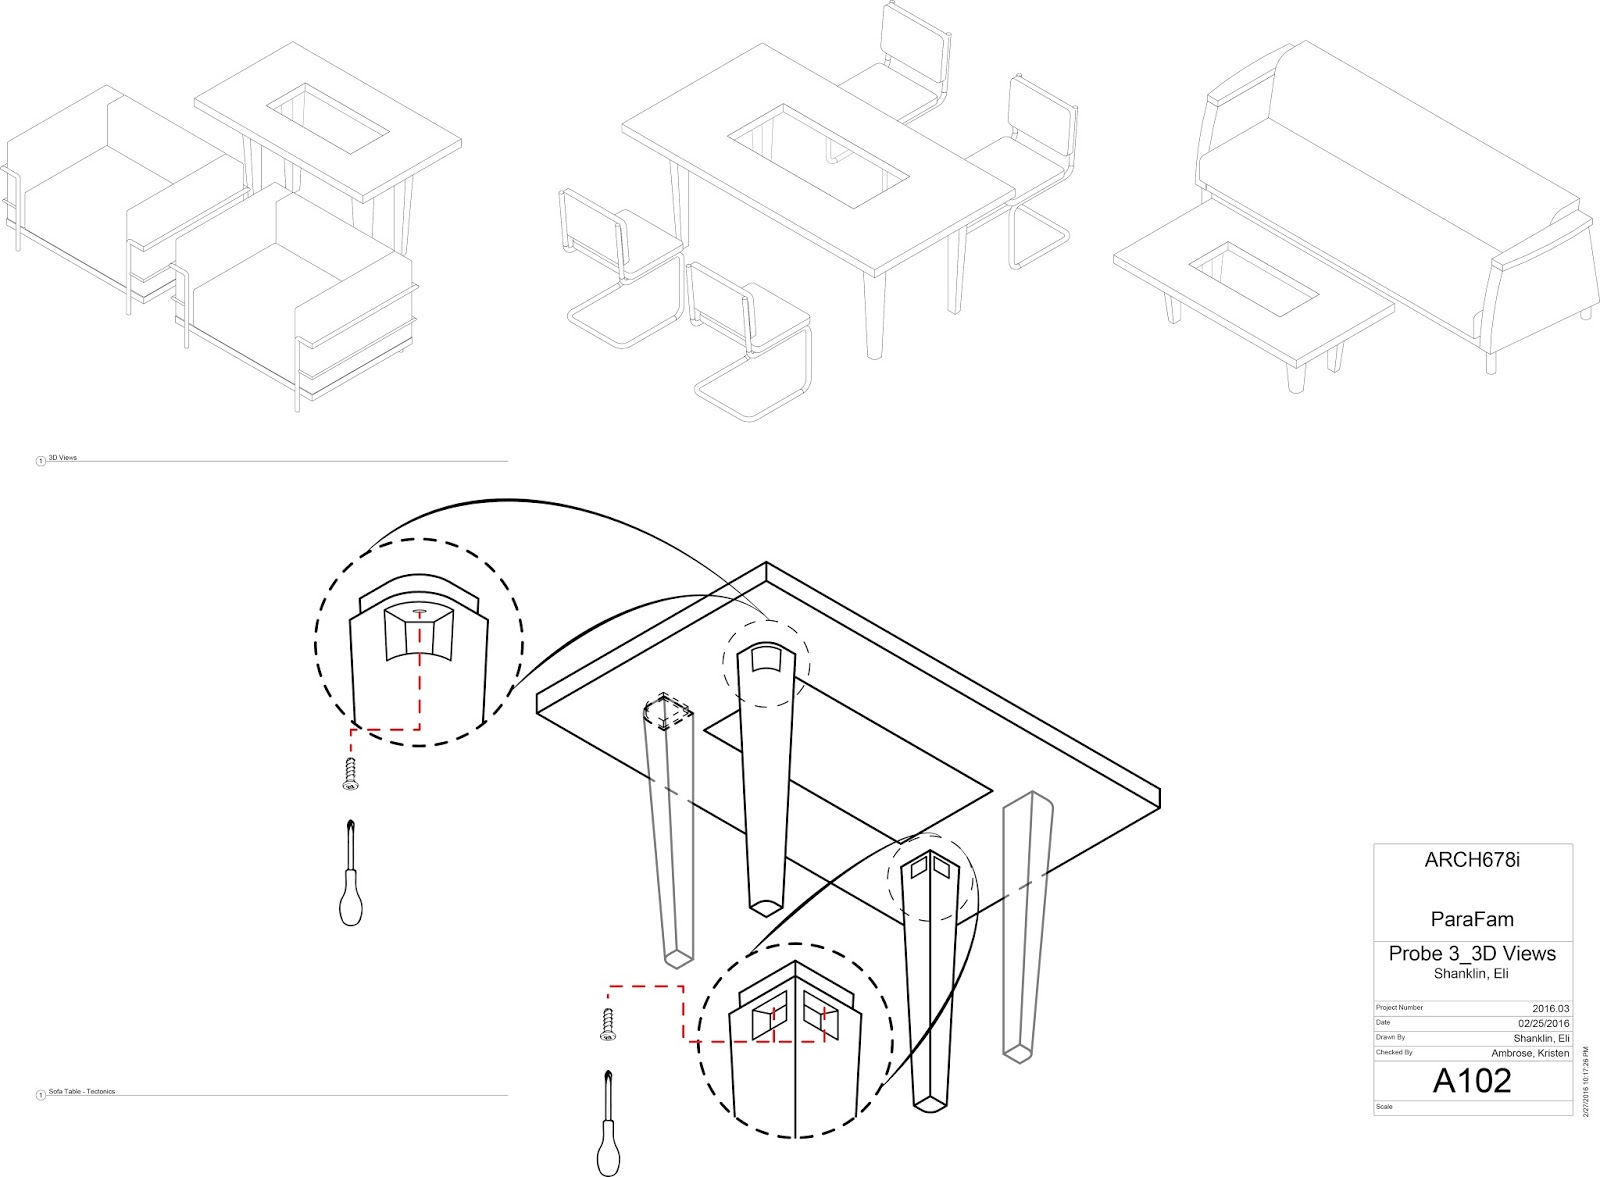 it takes a village probe 3 parafam umd 2016 bim exploration Types of Law above are axonometric views of the three table types with a more detailed drawing highlighting where screws would be used on the table legs